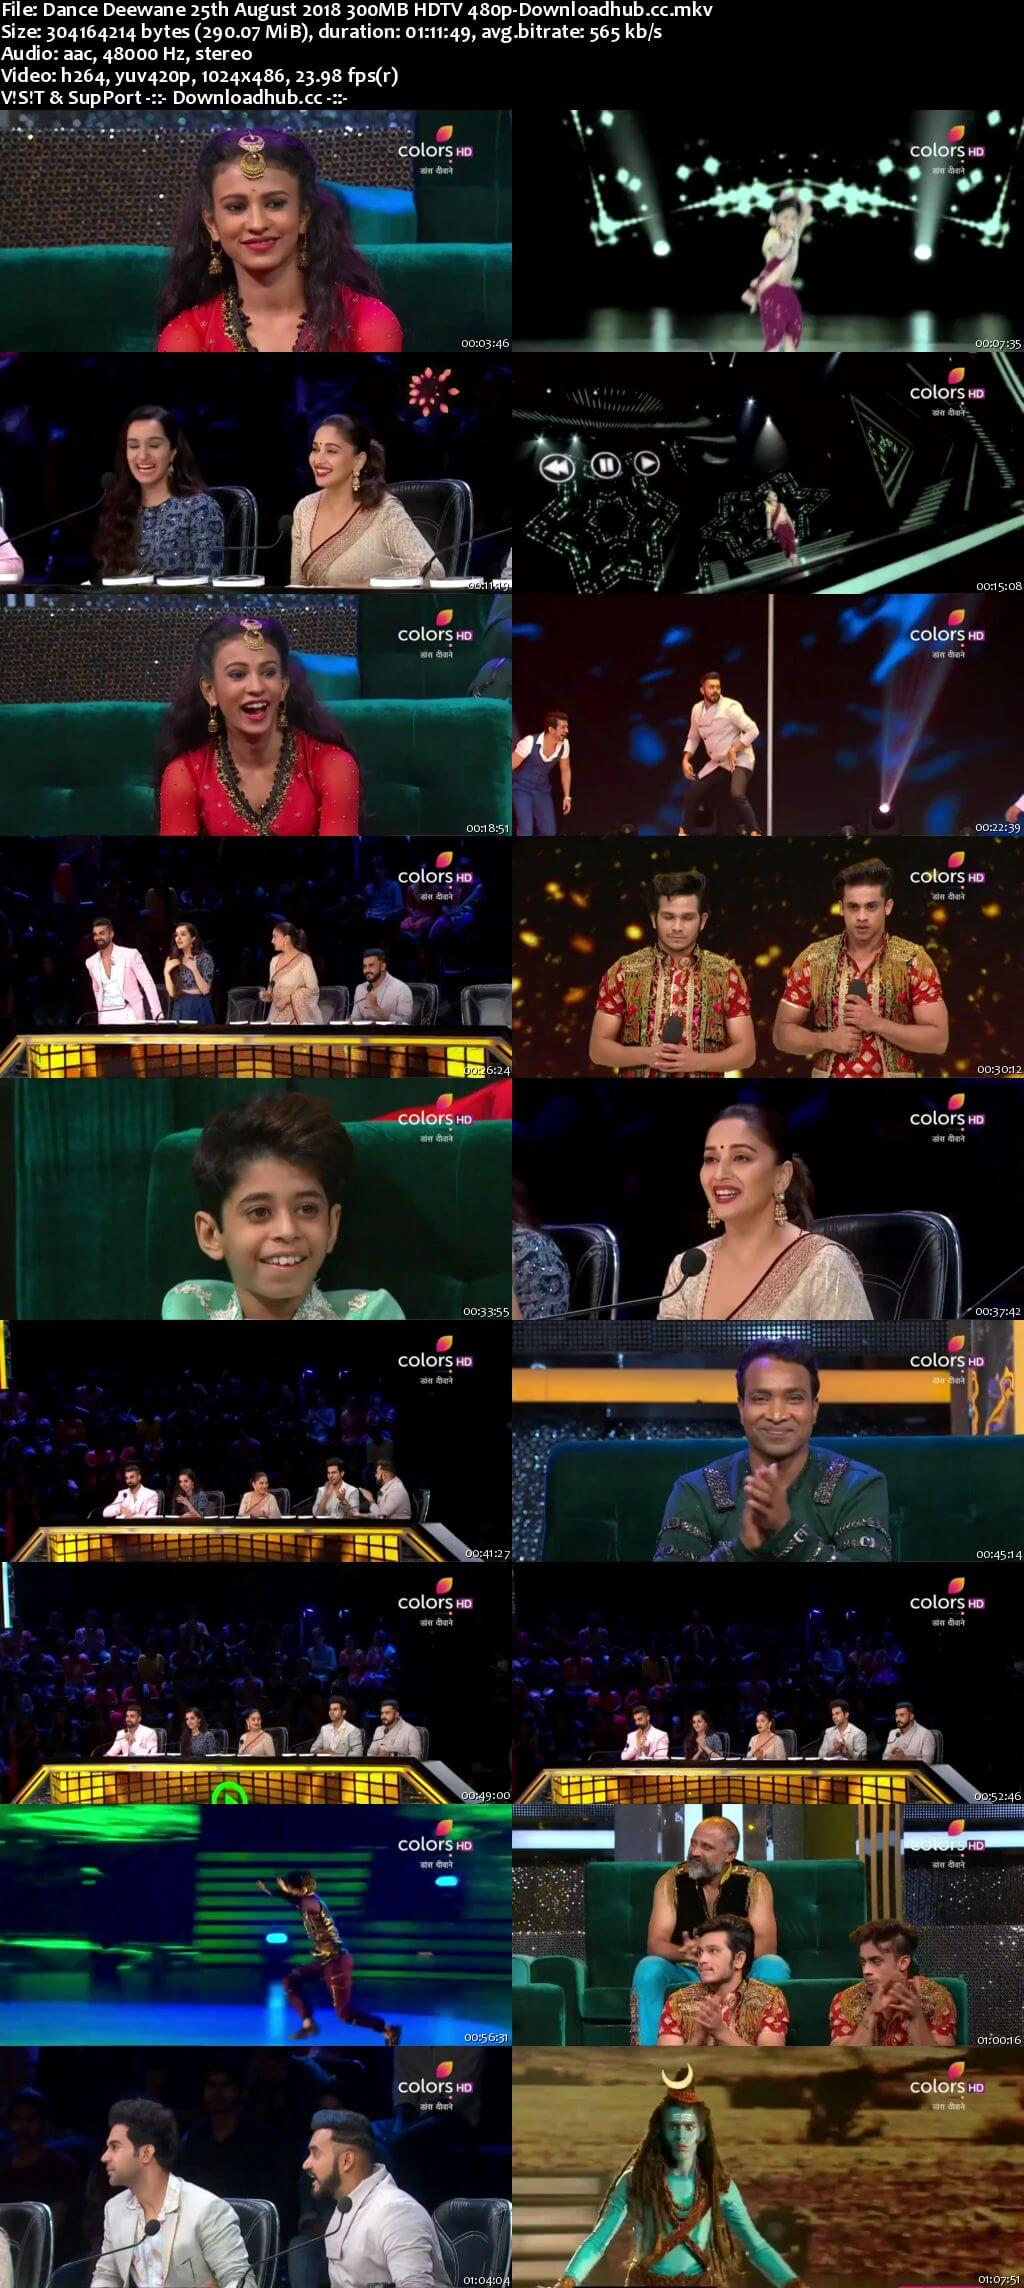 Dance Deewane 25 August 2018 Episode 24 HDTV 480p